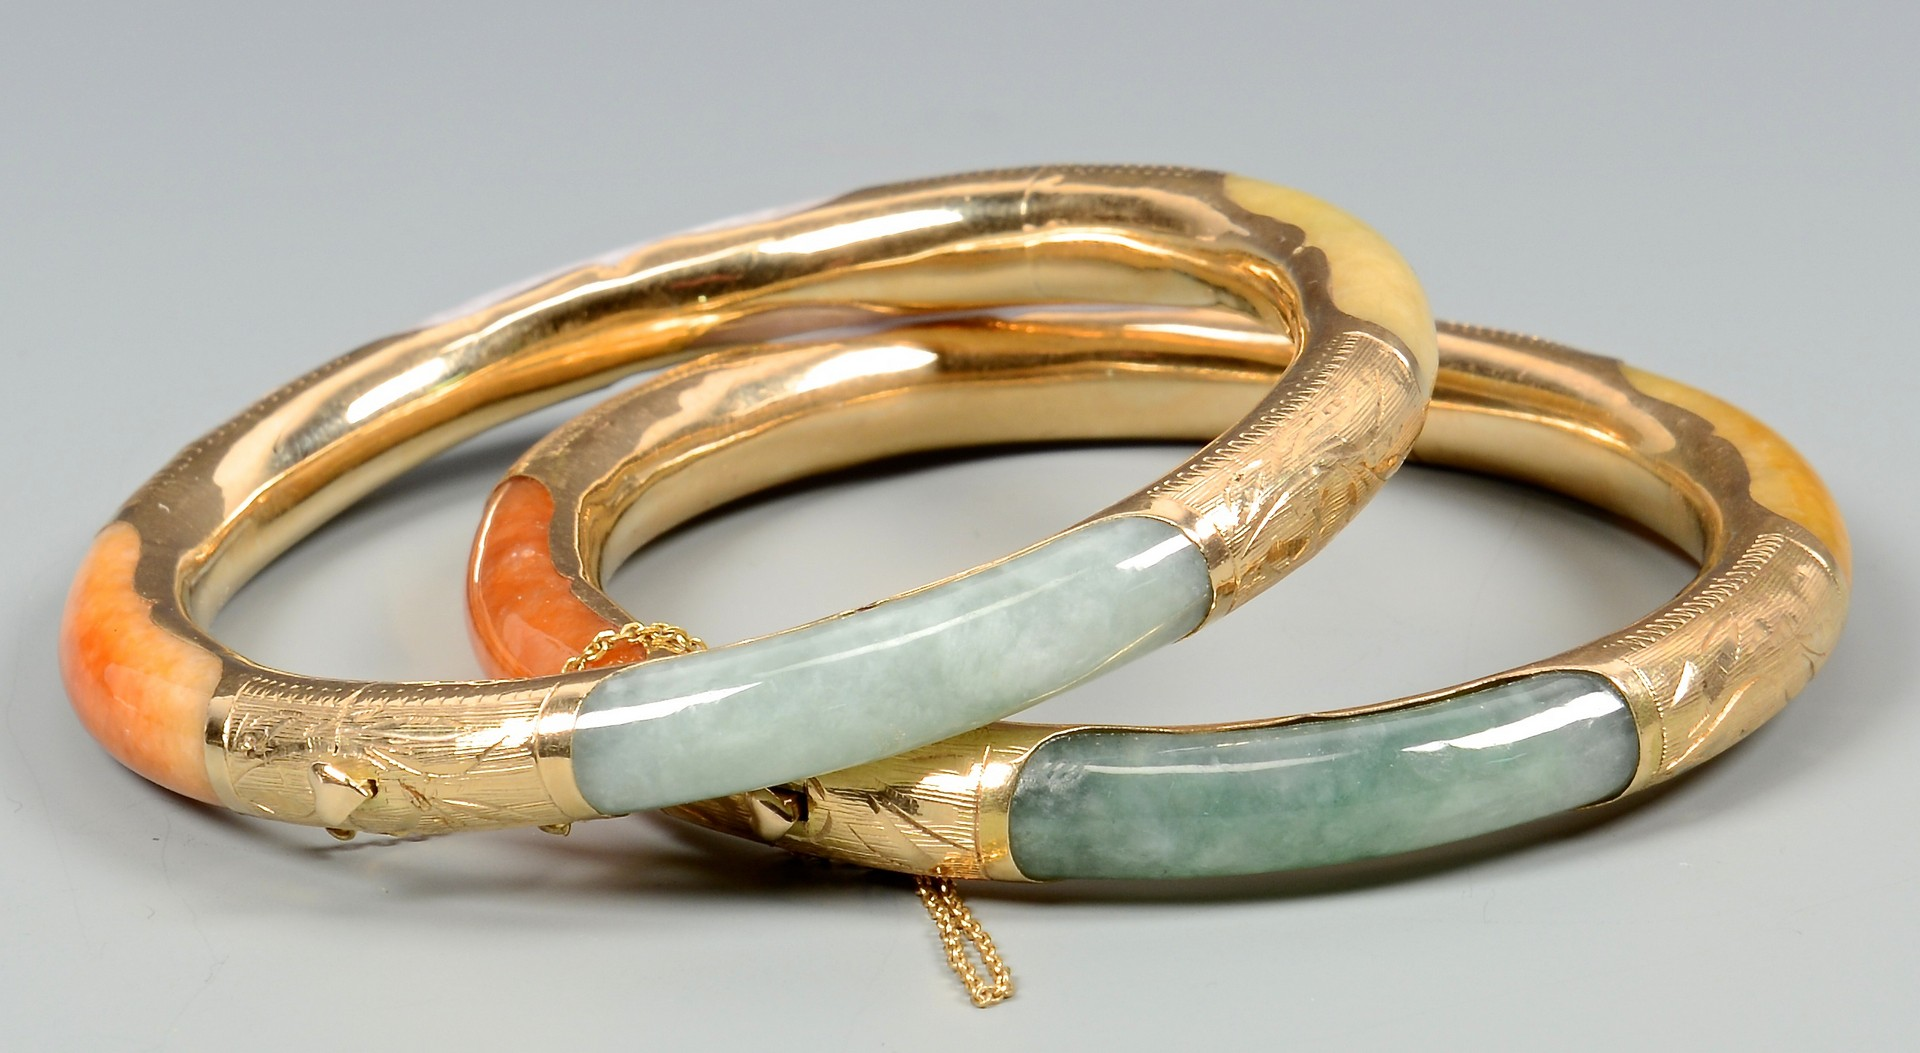 Lot 3832374: Two 14K Multicolored Jade Bracelets